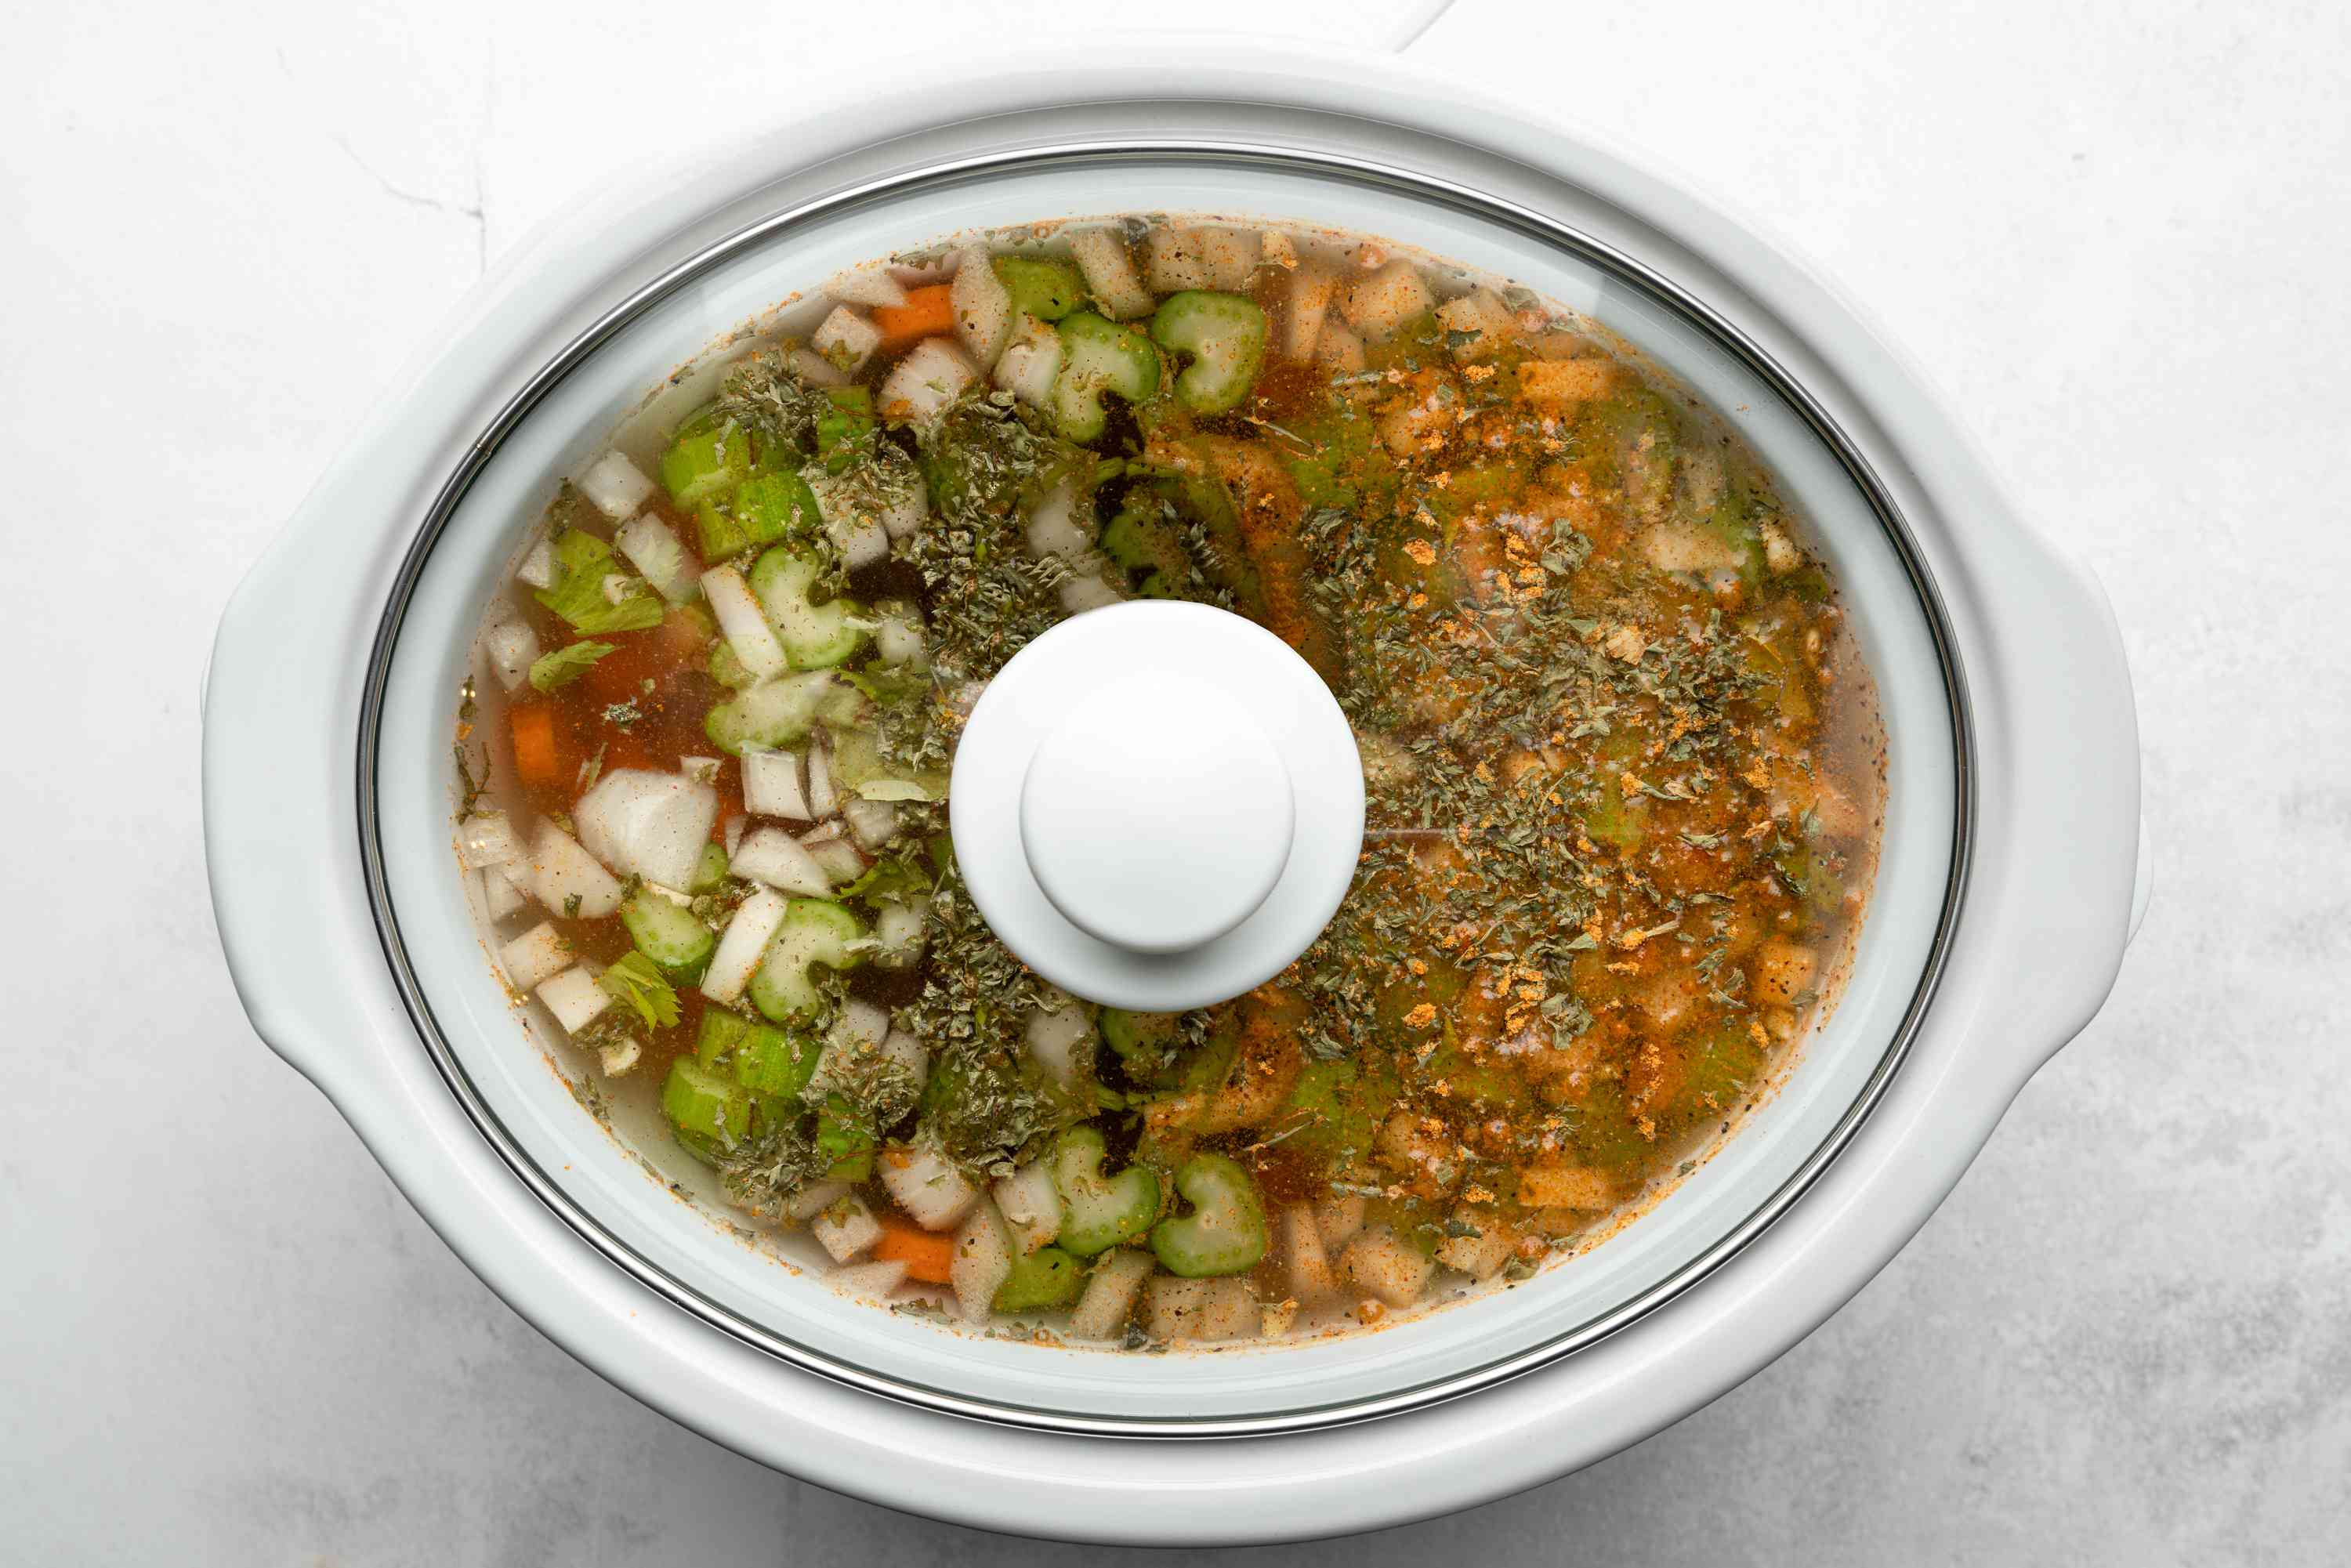 French Canadian-Style Crock Pot Split Pea Soup cooking in a slow cooker